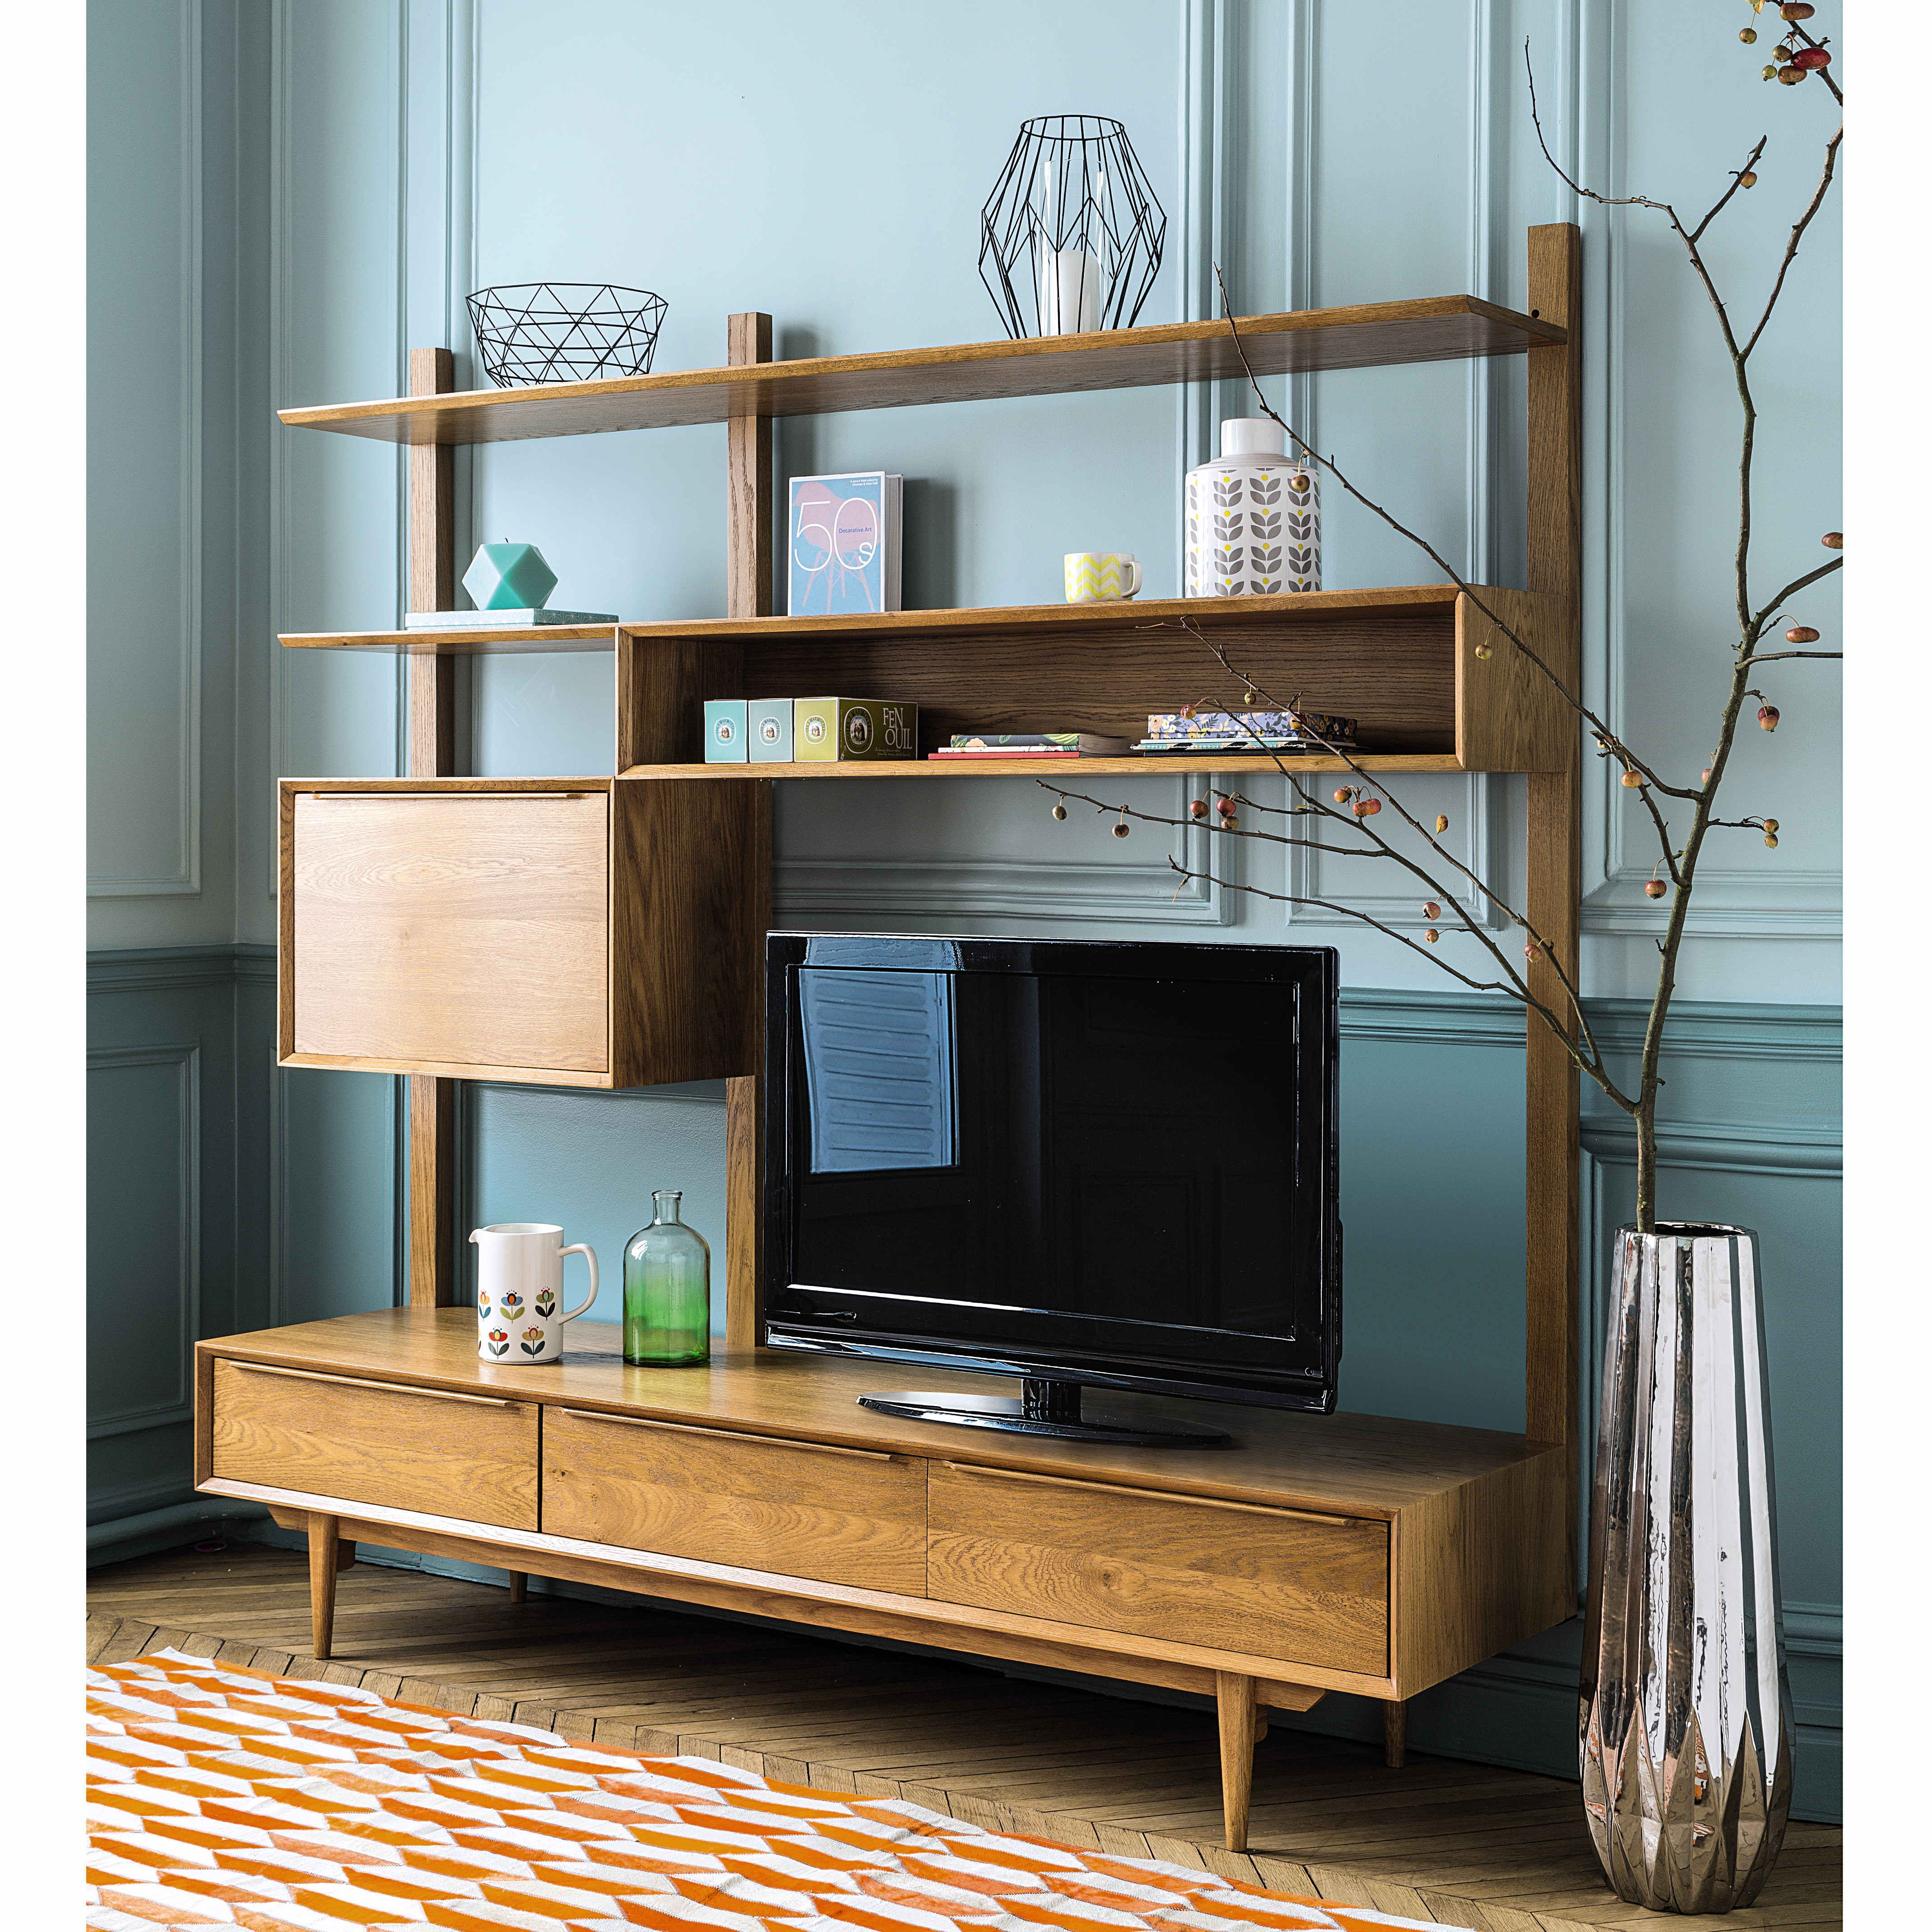 scaffale porta tv vintage in massello di quercia l 180 cm portobello maisons du monde. Black Bedroom Furniture Sets. Home Design Ideas